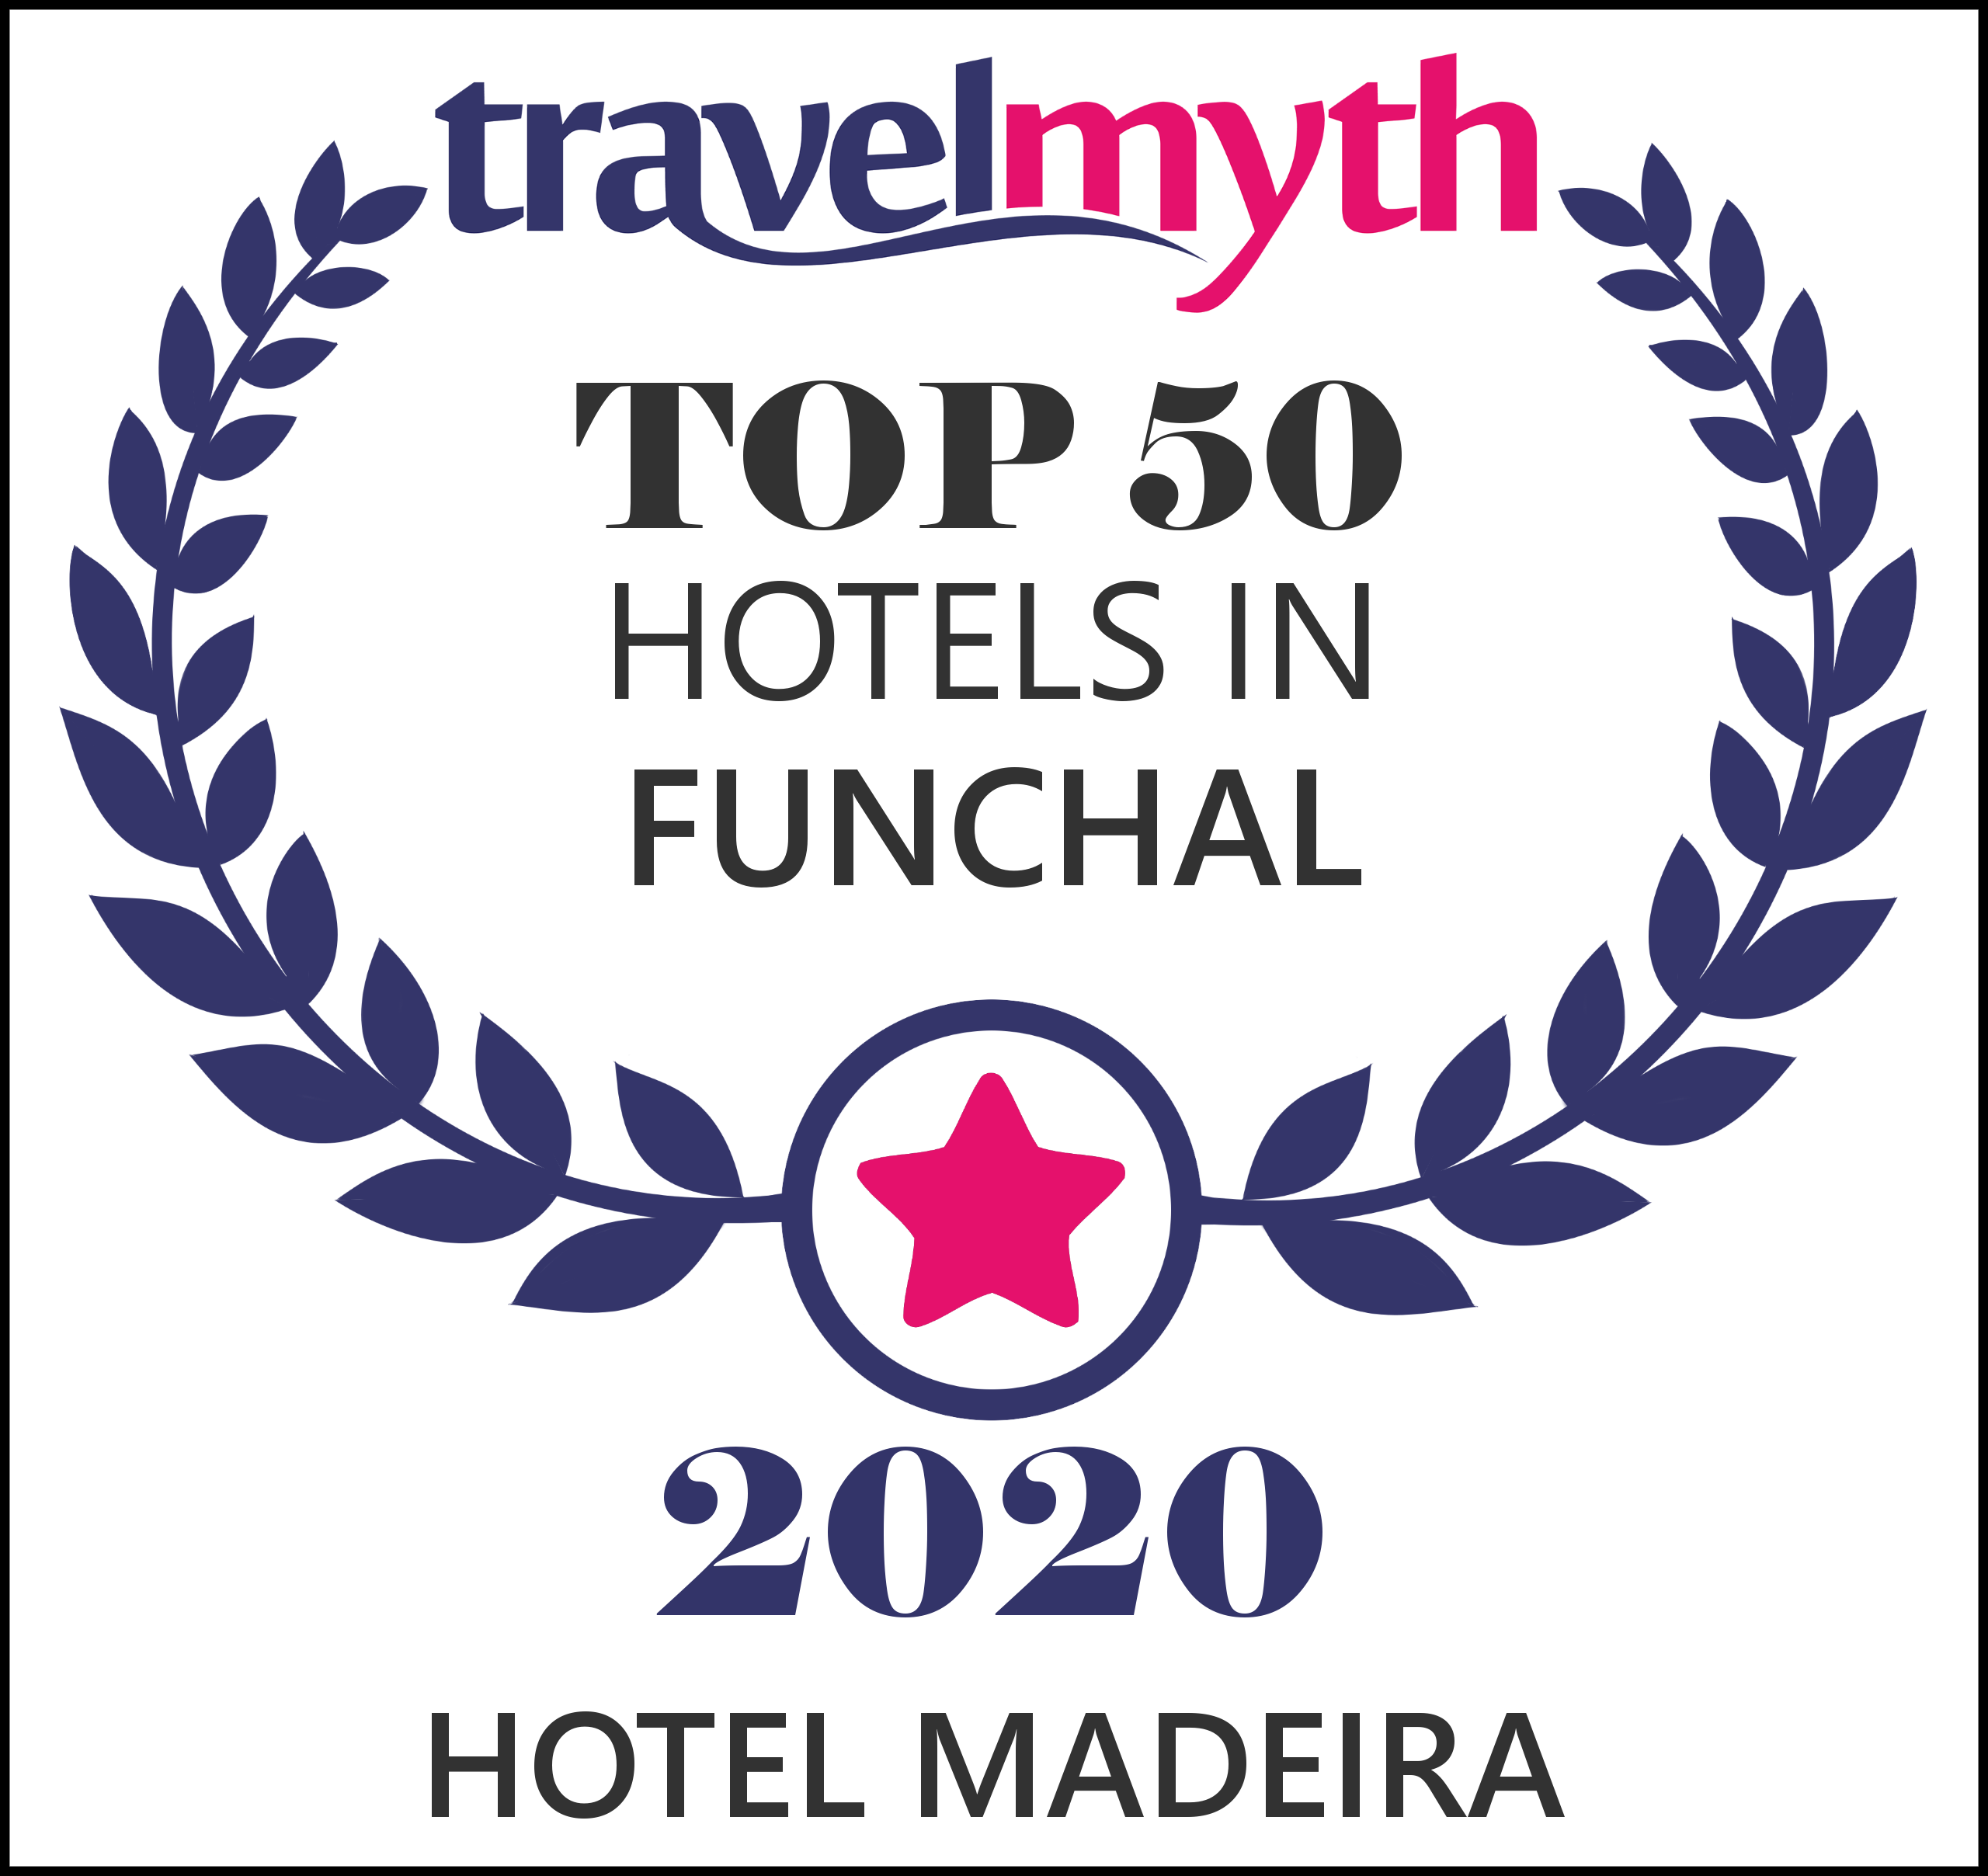 Travelmyth Top 50 dos Hoteis no Funchal